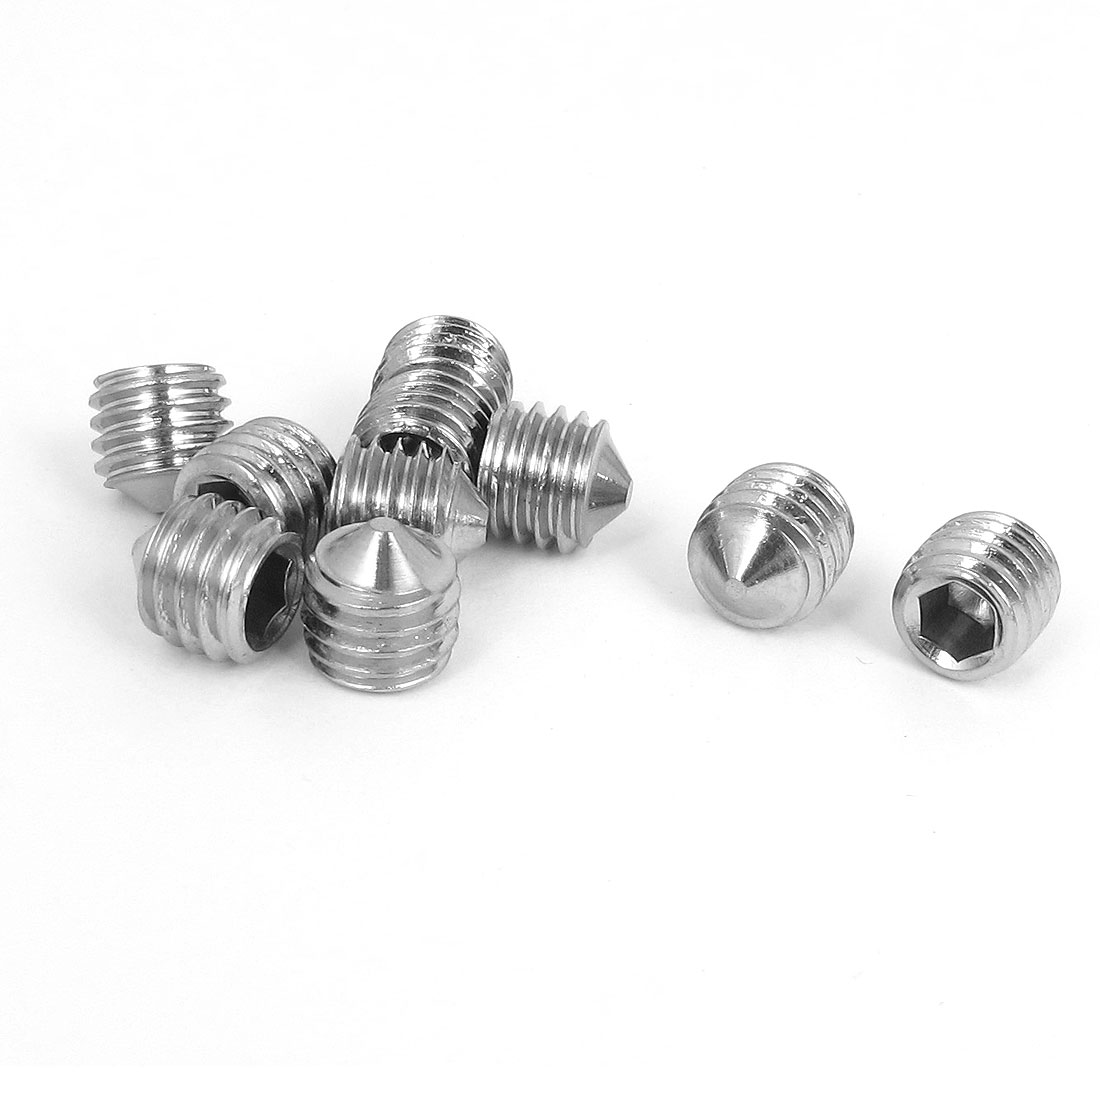 M10x10mm 304 Stainless Steel Cone Point Hexagon Socket Grub Screws 10pcs